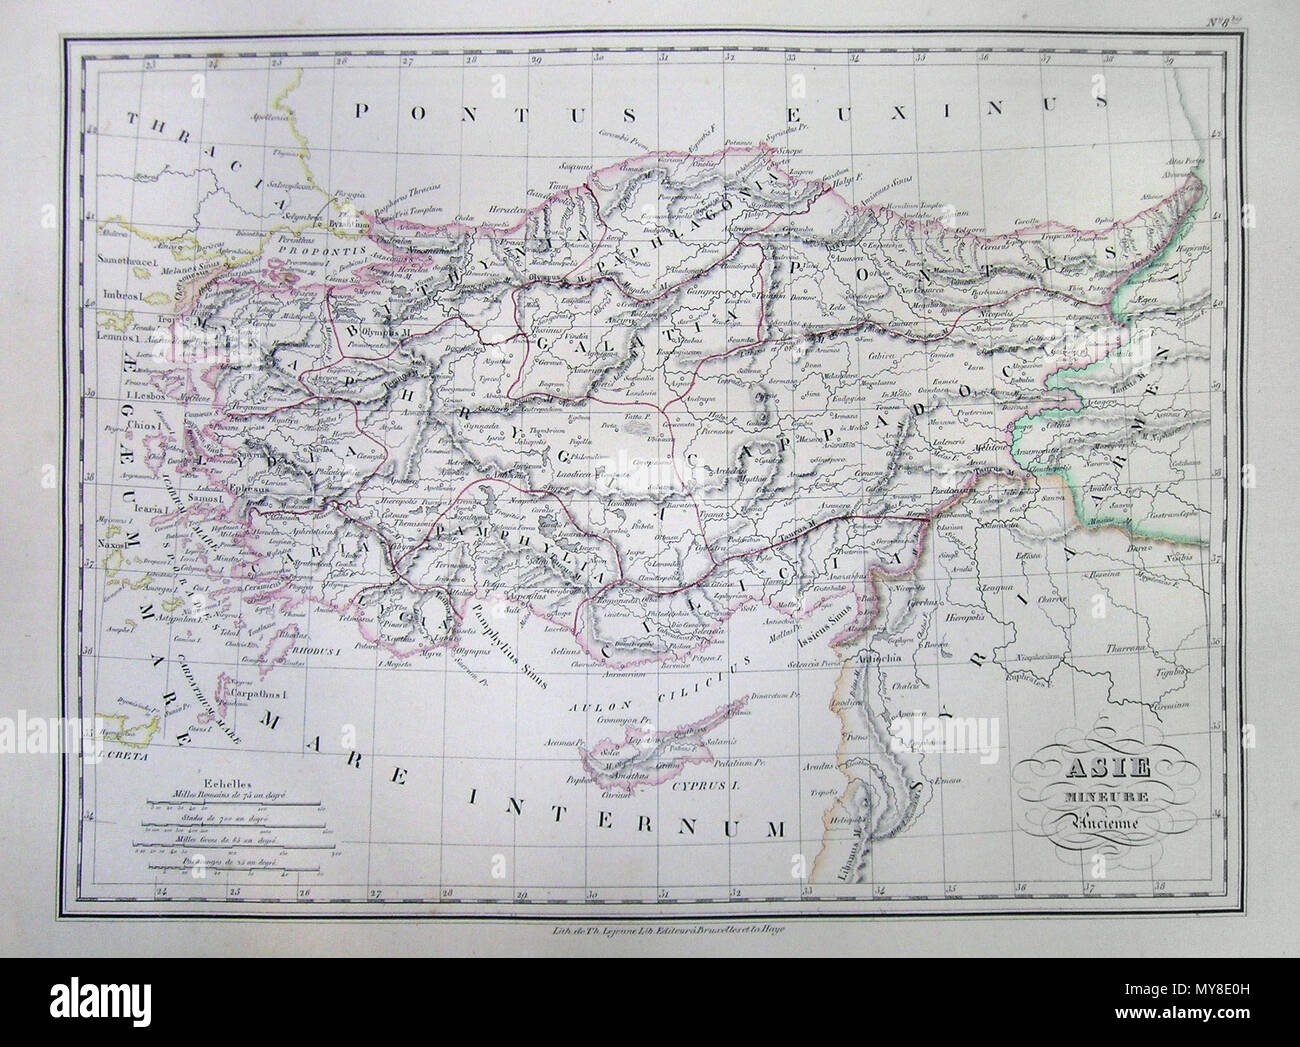 Map Of Asia Over Time.Malte Brun Map Of Asia In Ancient Times Stock Photos Malte Brun